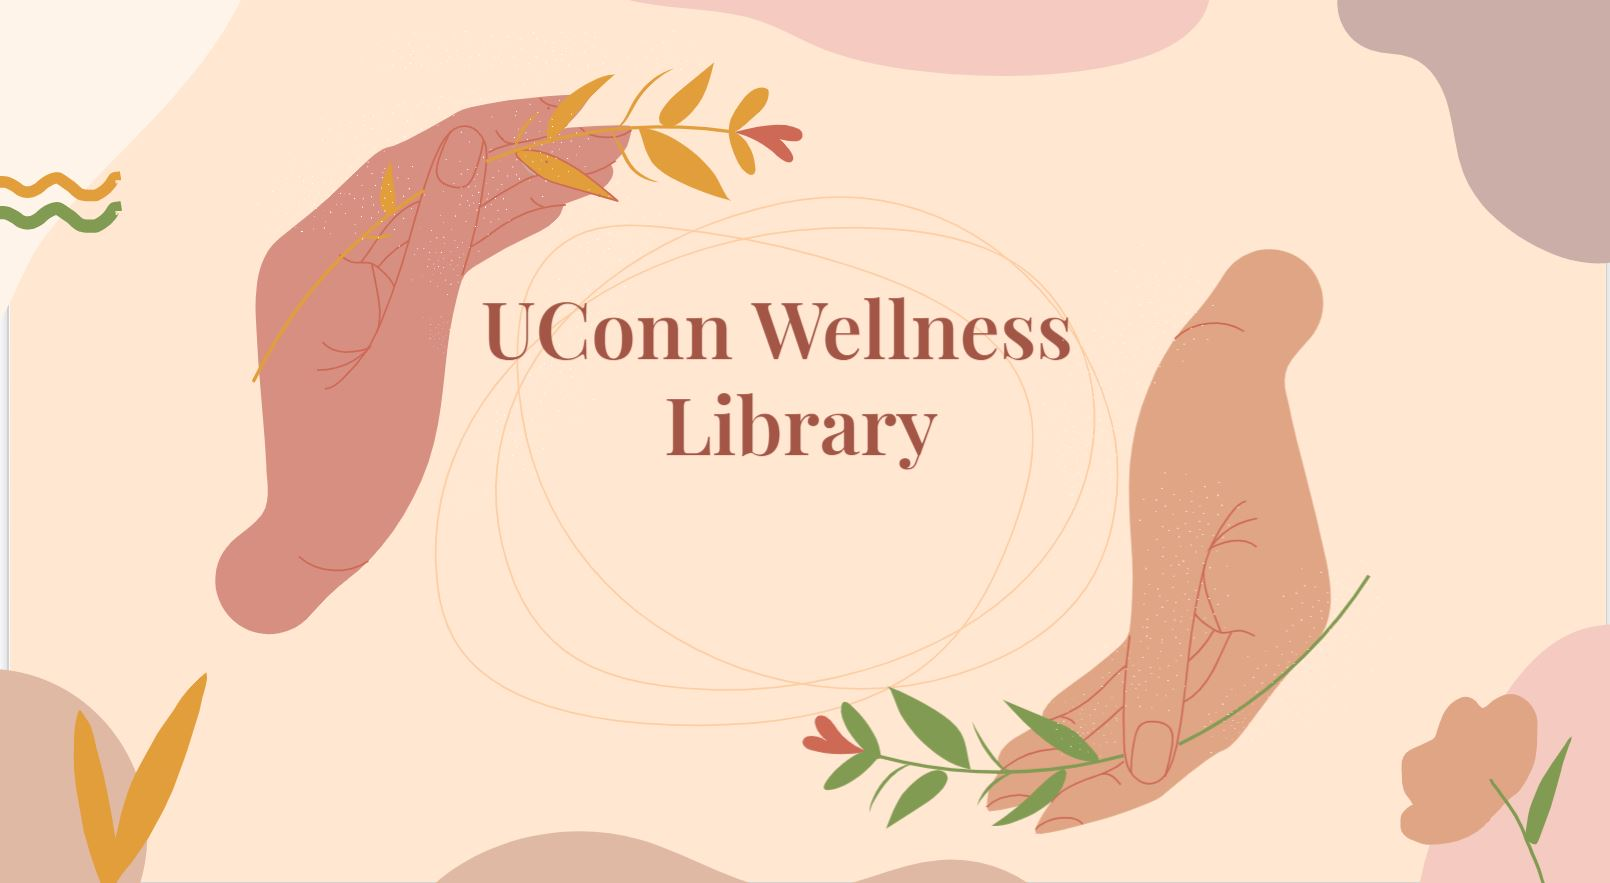 image of two hands holding a flower circling the wellness library text